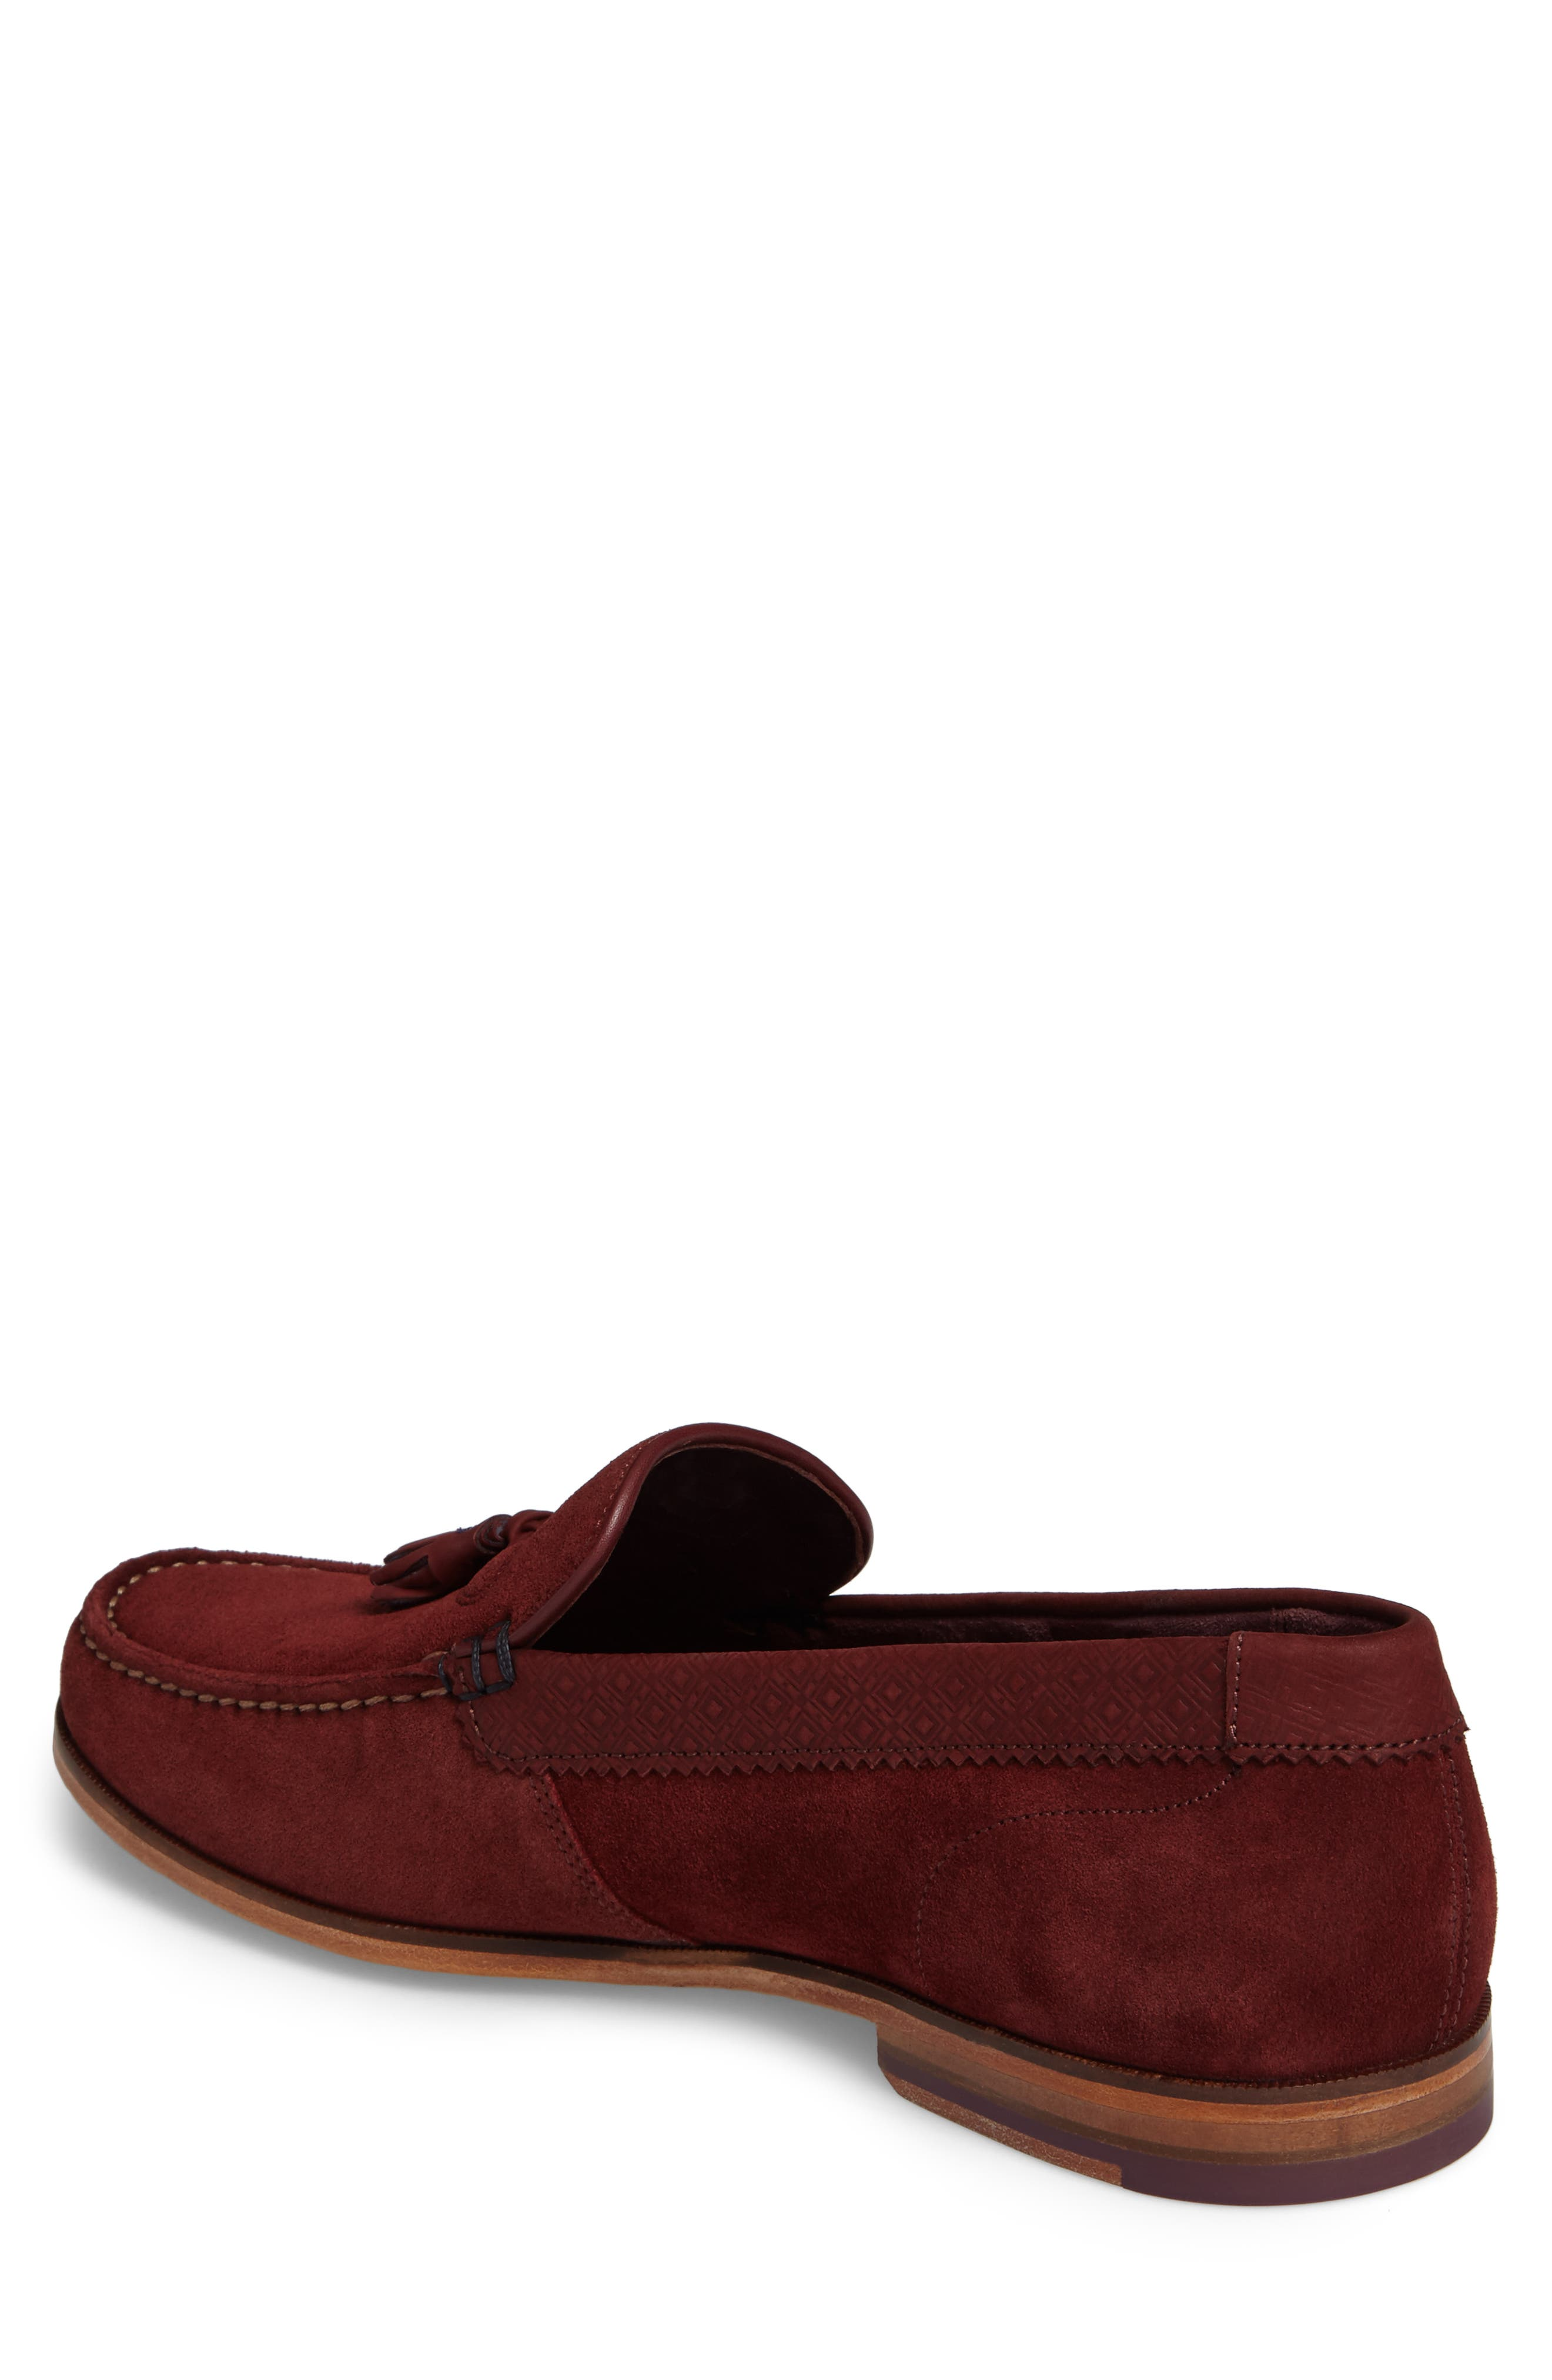 Dougge Tassel Loafer,                             Alternate thumbnail 11, color,